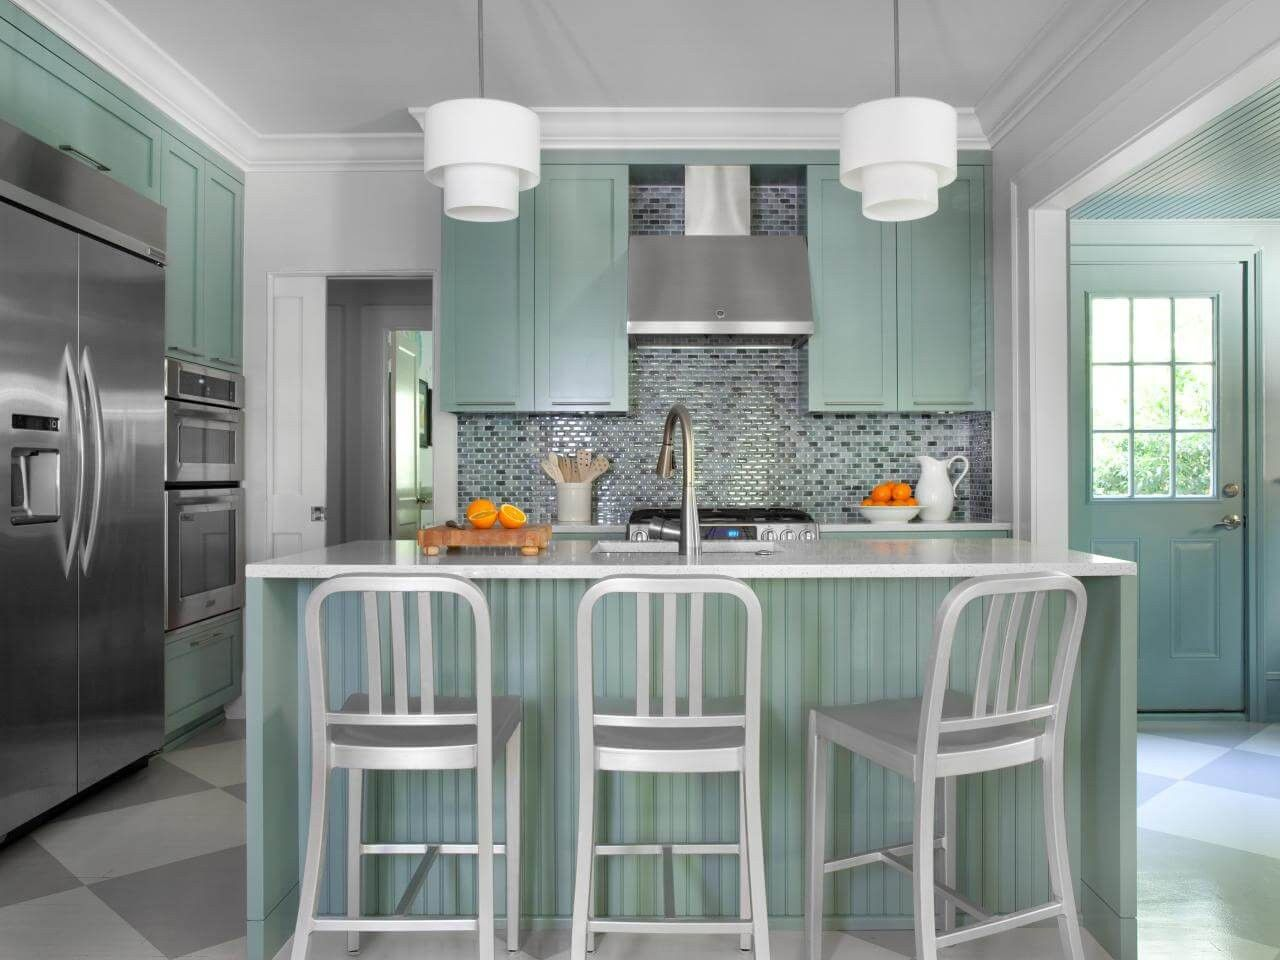 55+ Gray Cabinets What Color Walls - Kitchen Cabinet Inserts Ideas ...